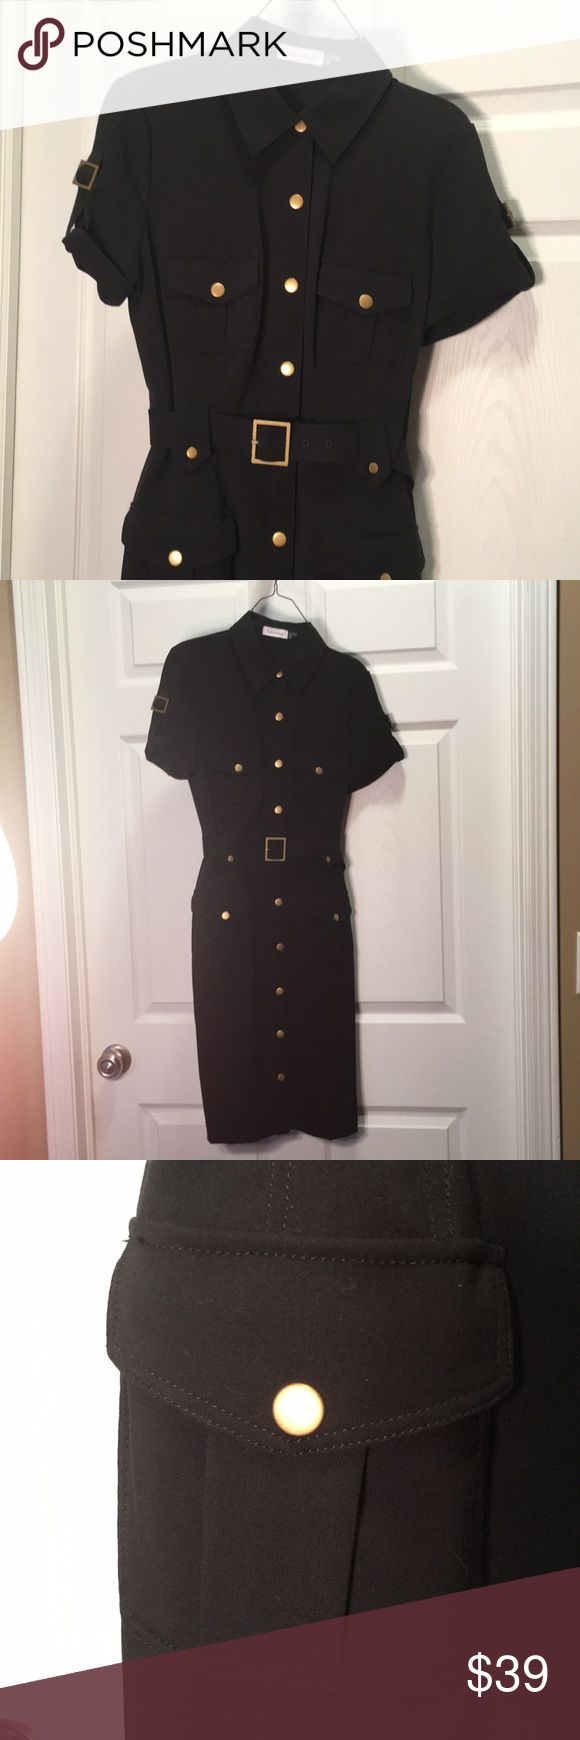 Calvin Klein Dress Sz 4 This dress is so flattering on small frame ladies! Calvin Klein belted button up black dress with burnished gold snaps and buckles. Size 4. Step in, the bottom snaps are faux. Smoke free, pet and perfume friendly closet. Thank you for shopping with me. Calvin Klein Dresses